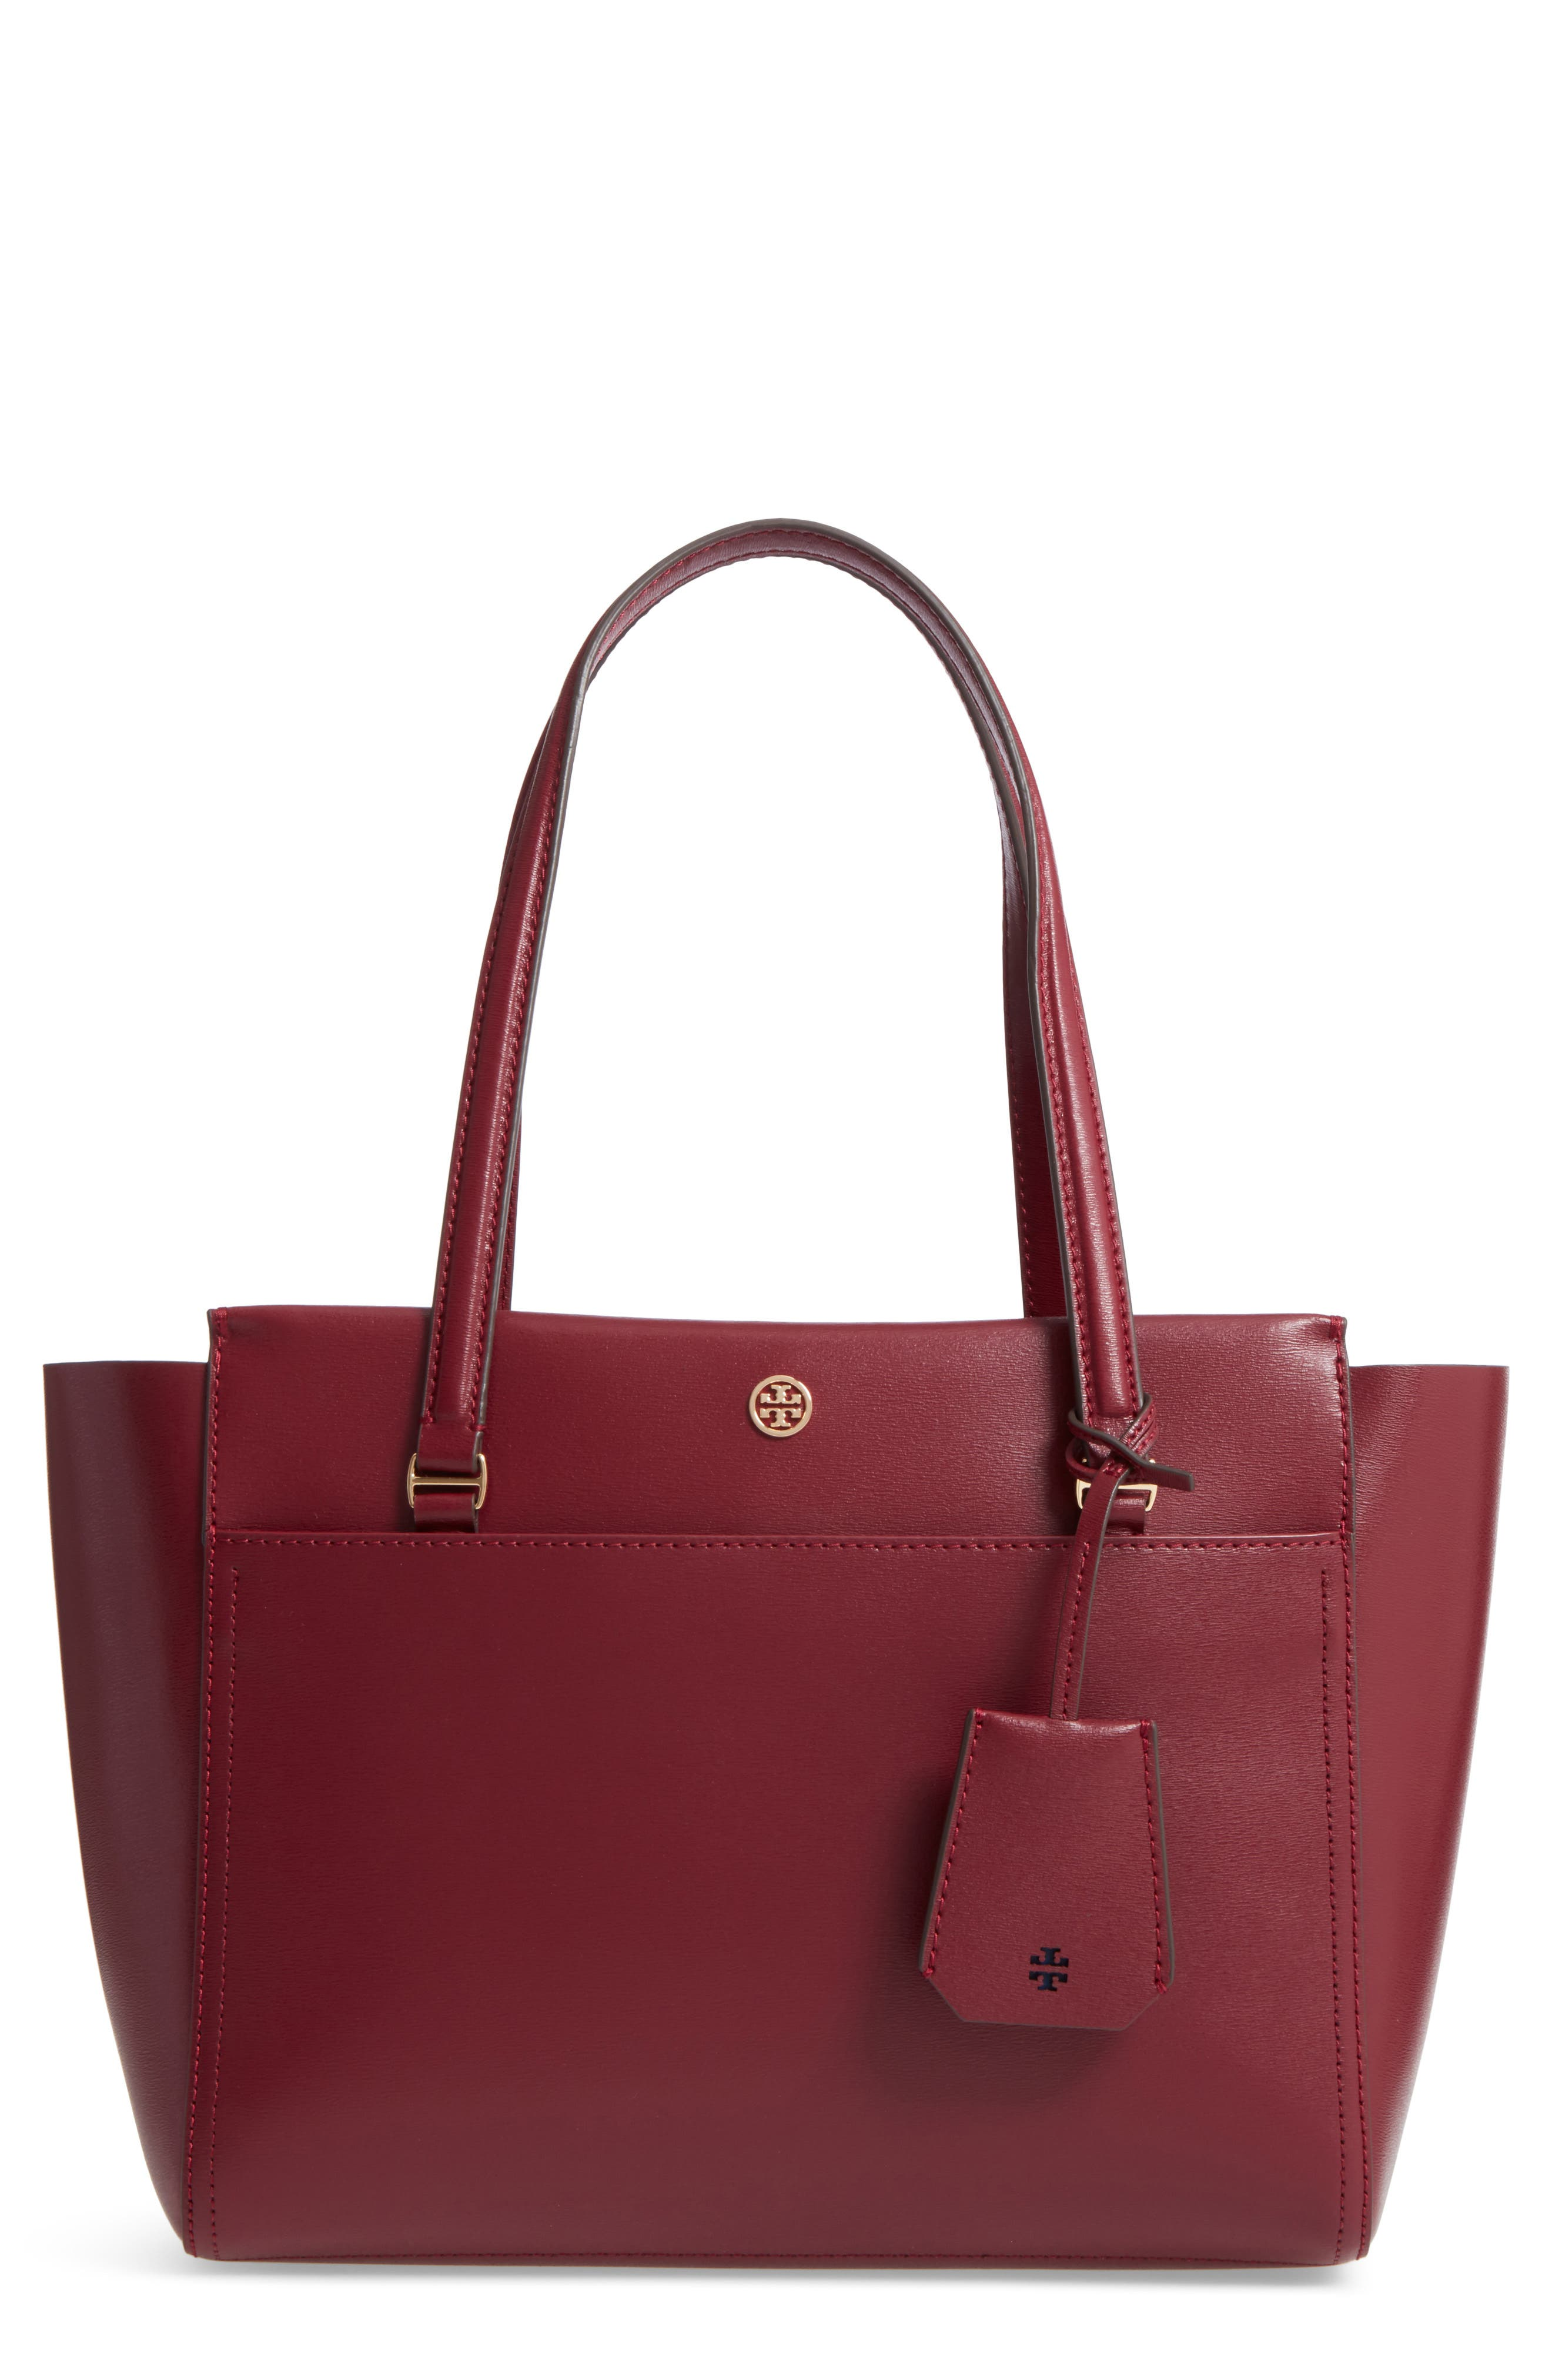 Alternate Image 1 Selected - Tory Burch Small Parker Leather Tote